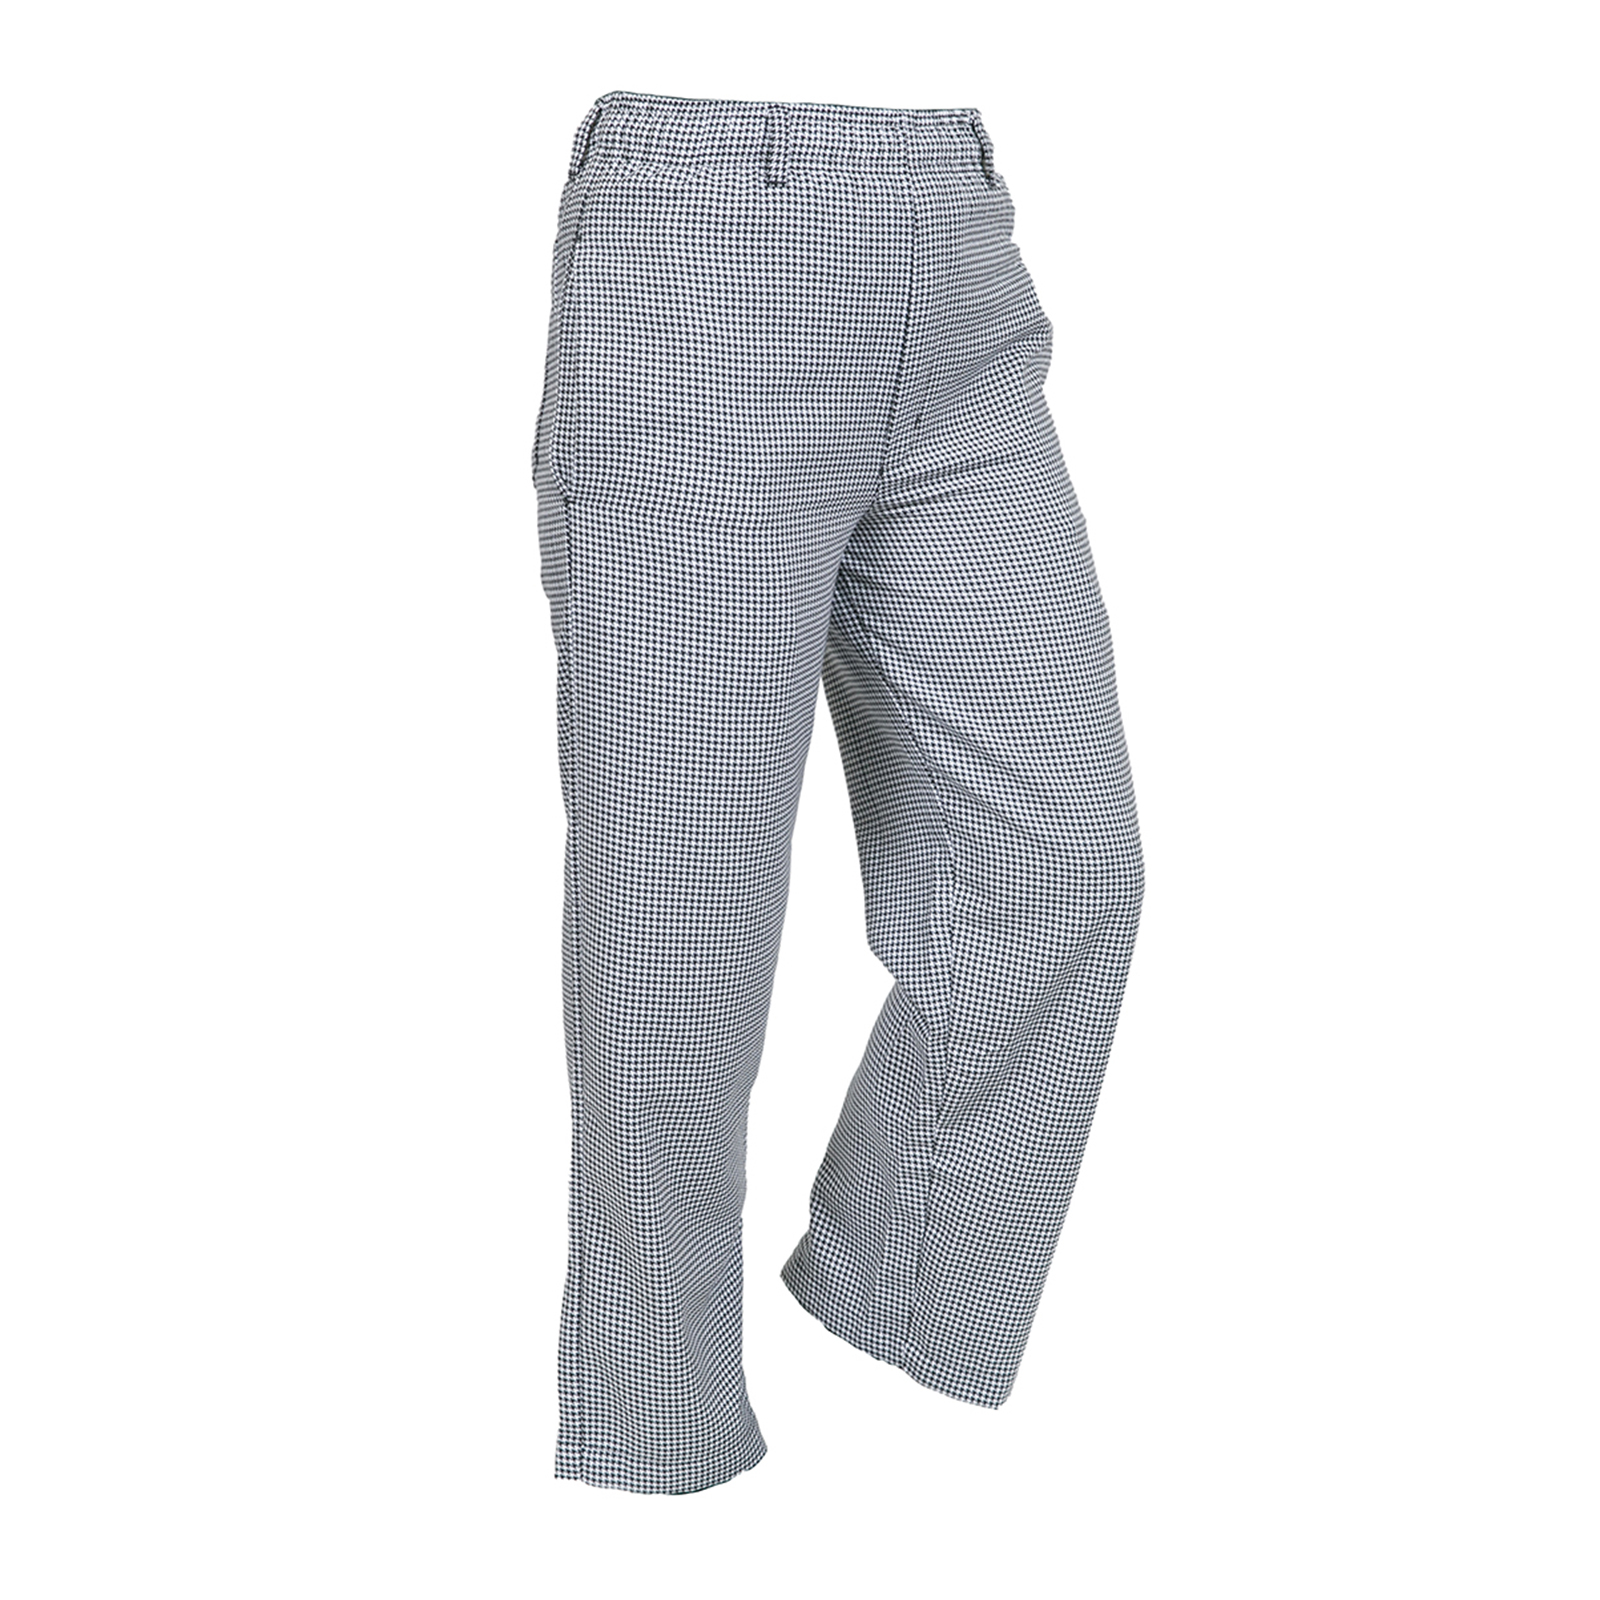 Mercer Culinary M61050HTM chef's pants